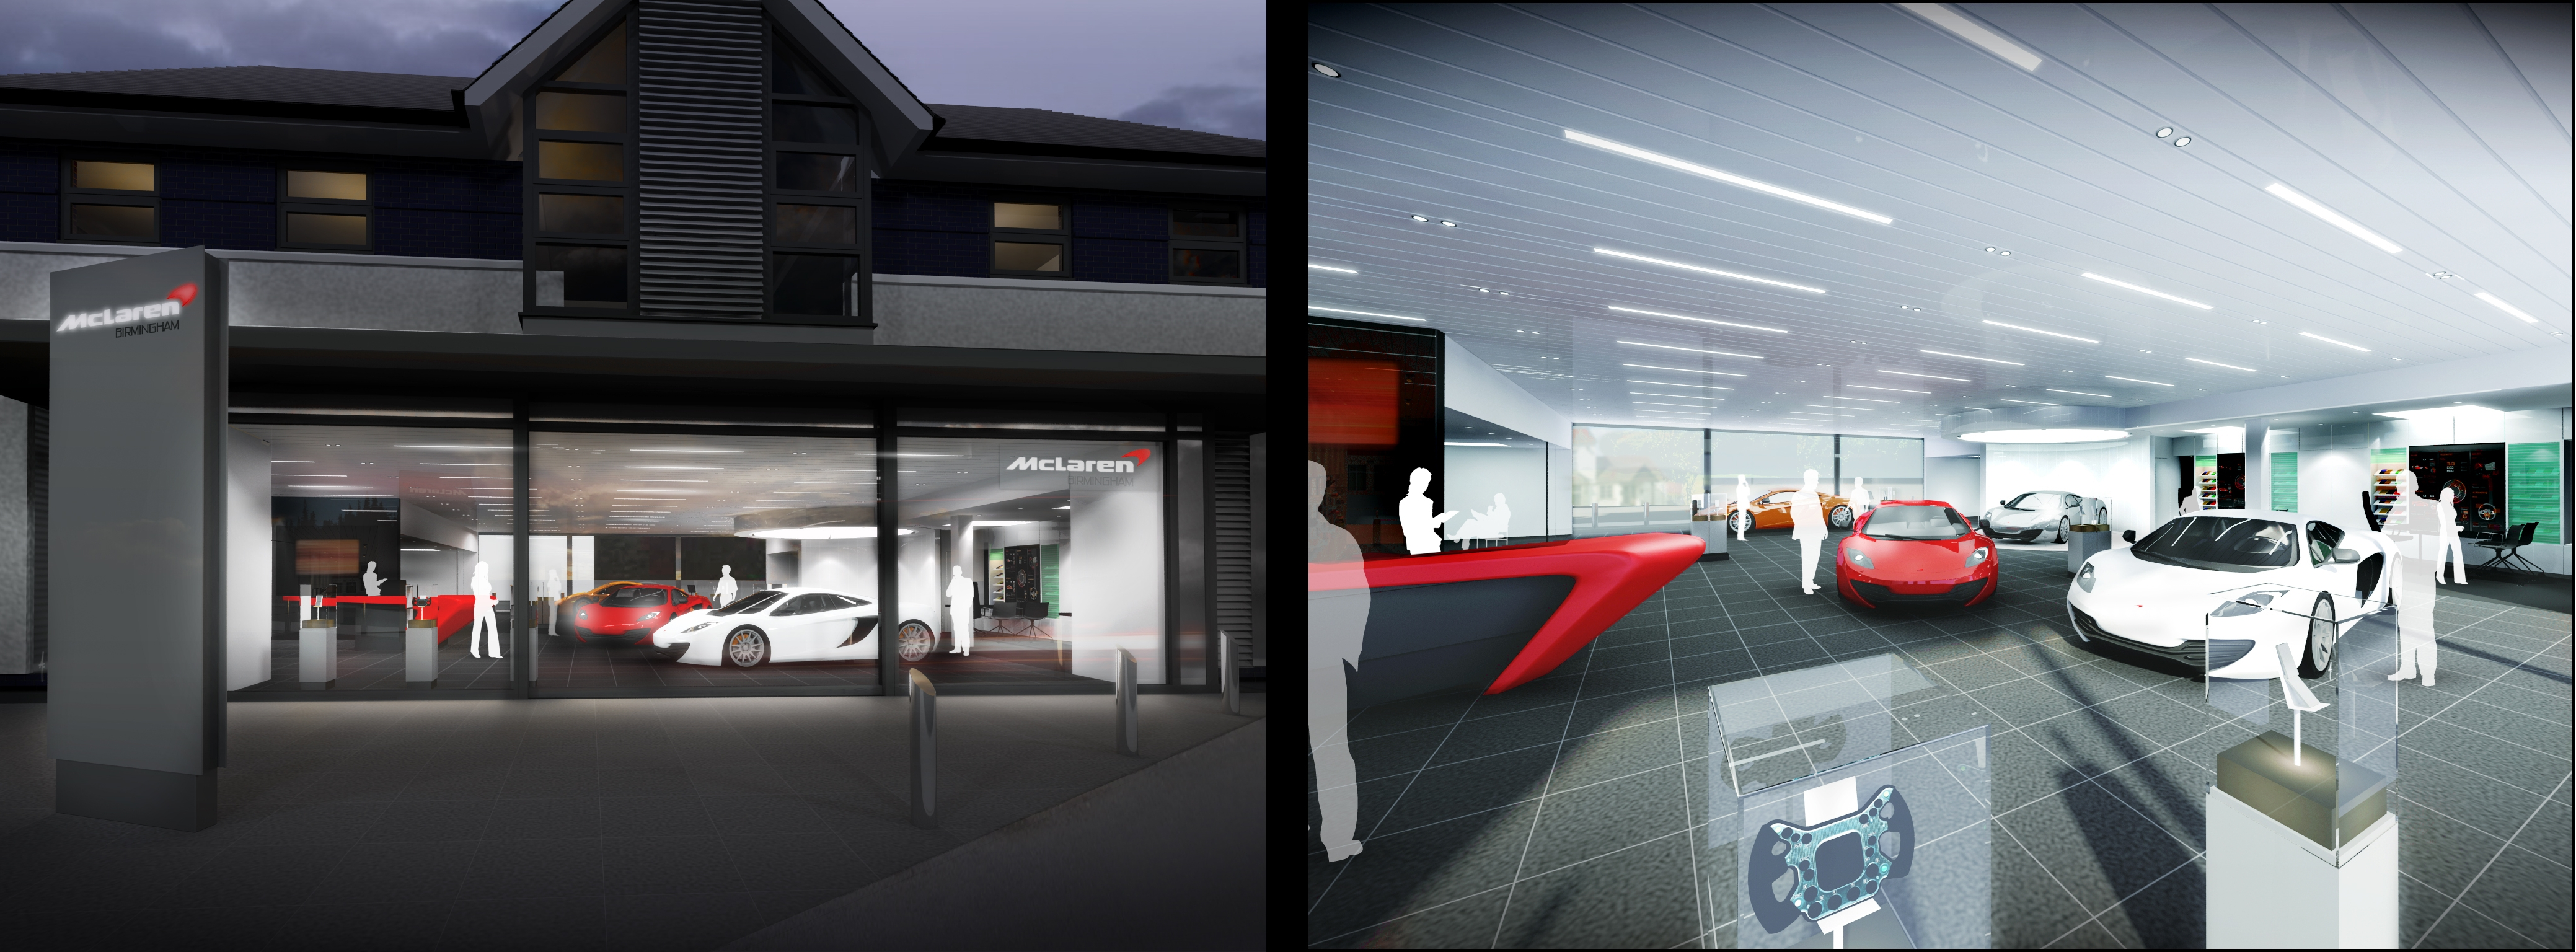 Rybrook Holdings Ltd Reveals Vision For Brand New Mclaren Birmingham Showroom